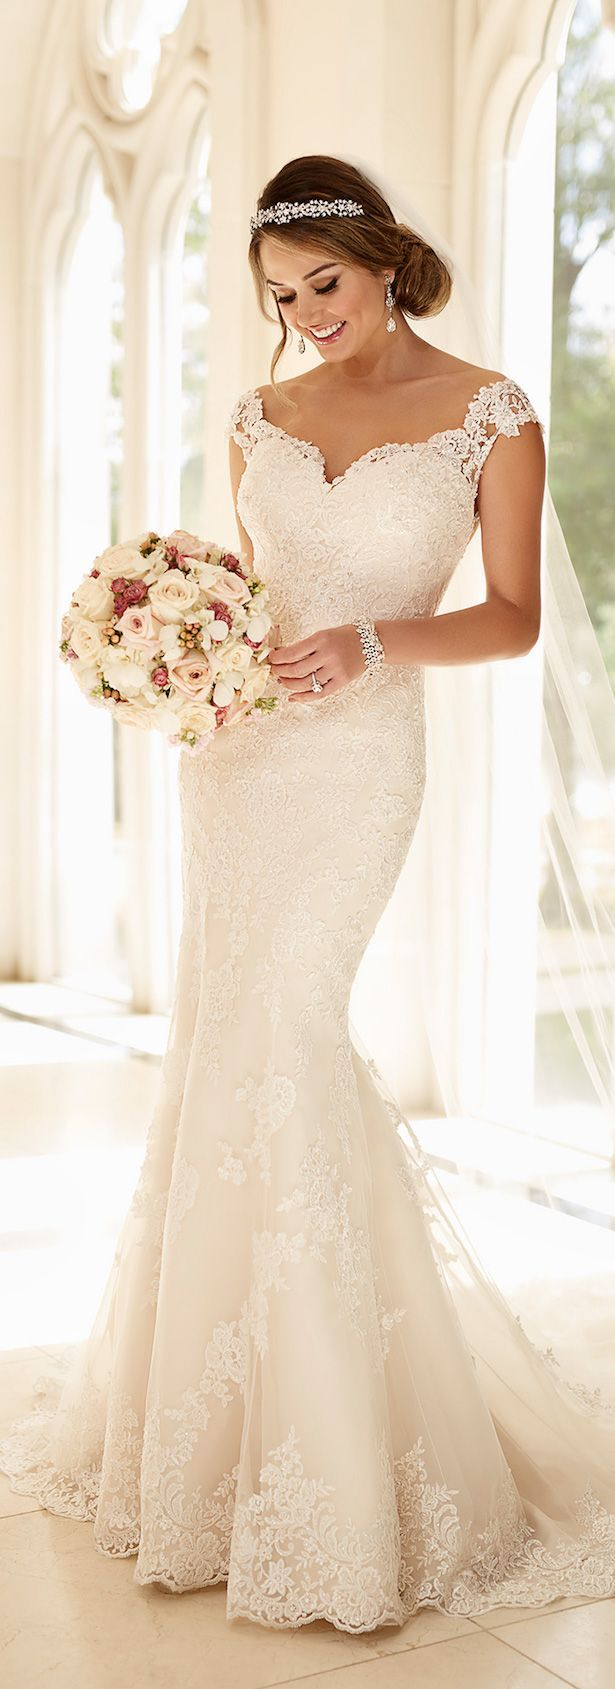 How much is a wedding dress   best wedding images on Pinterest  Dream wedding Weddings and